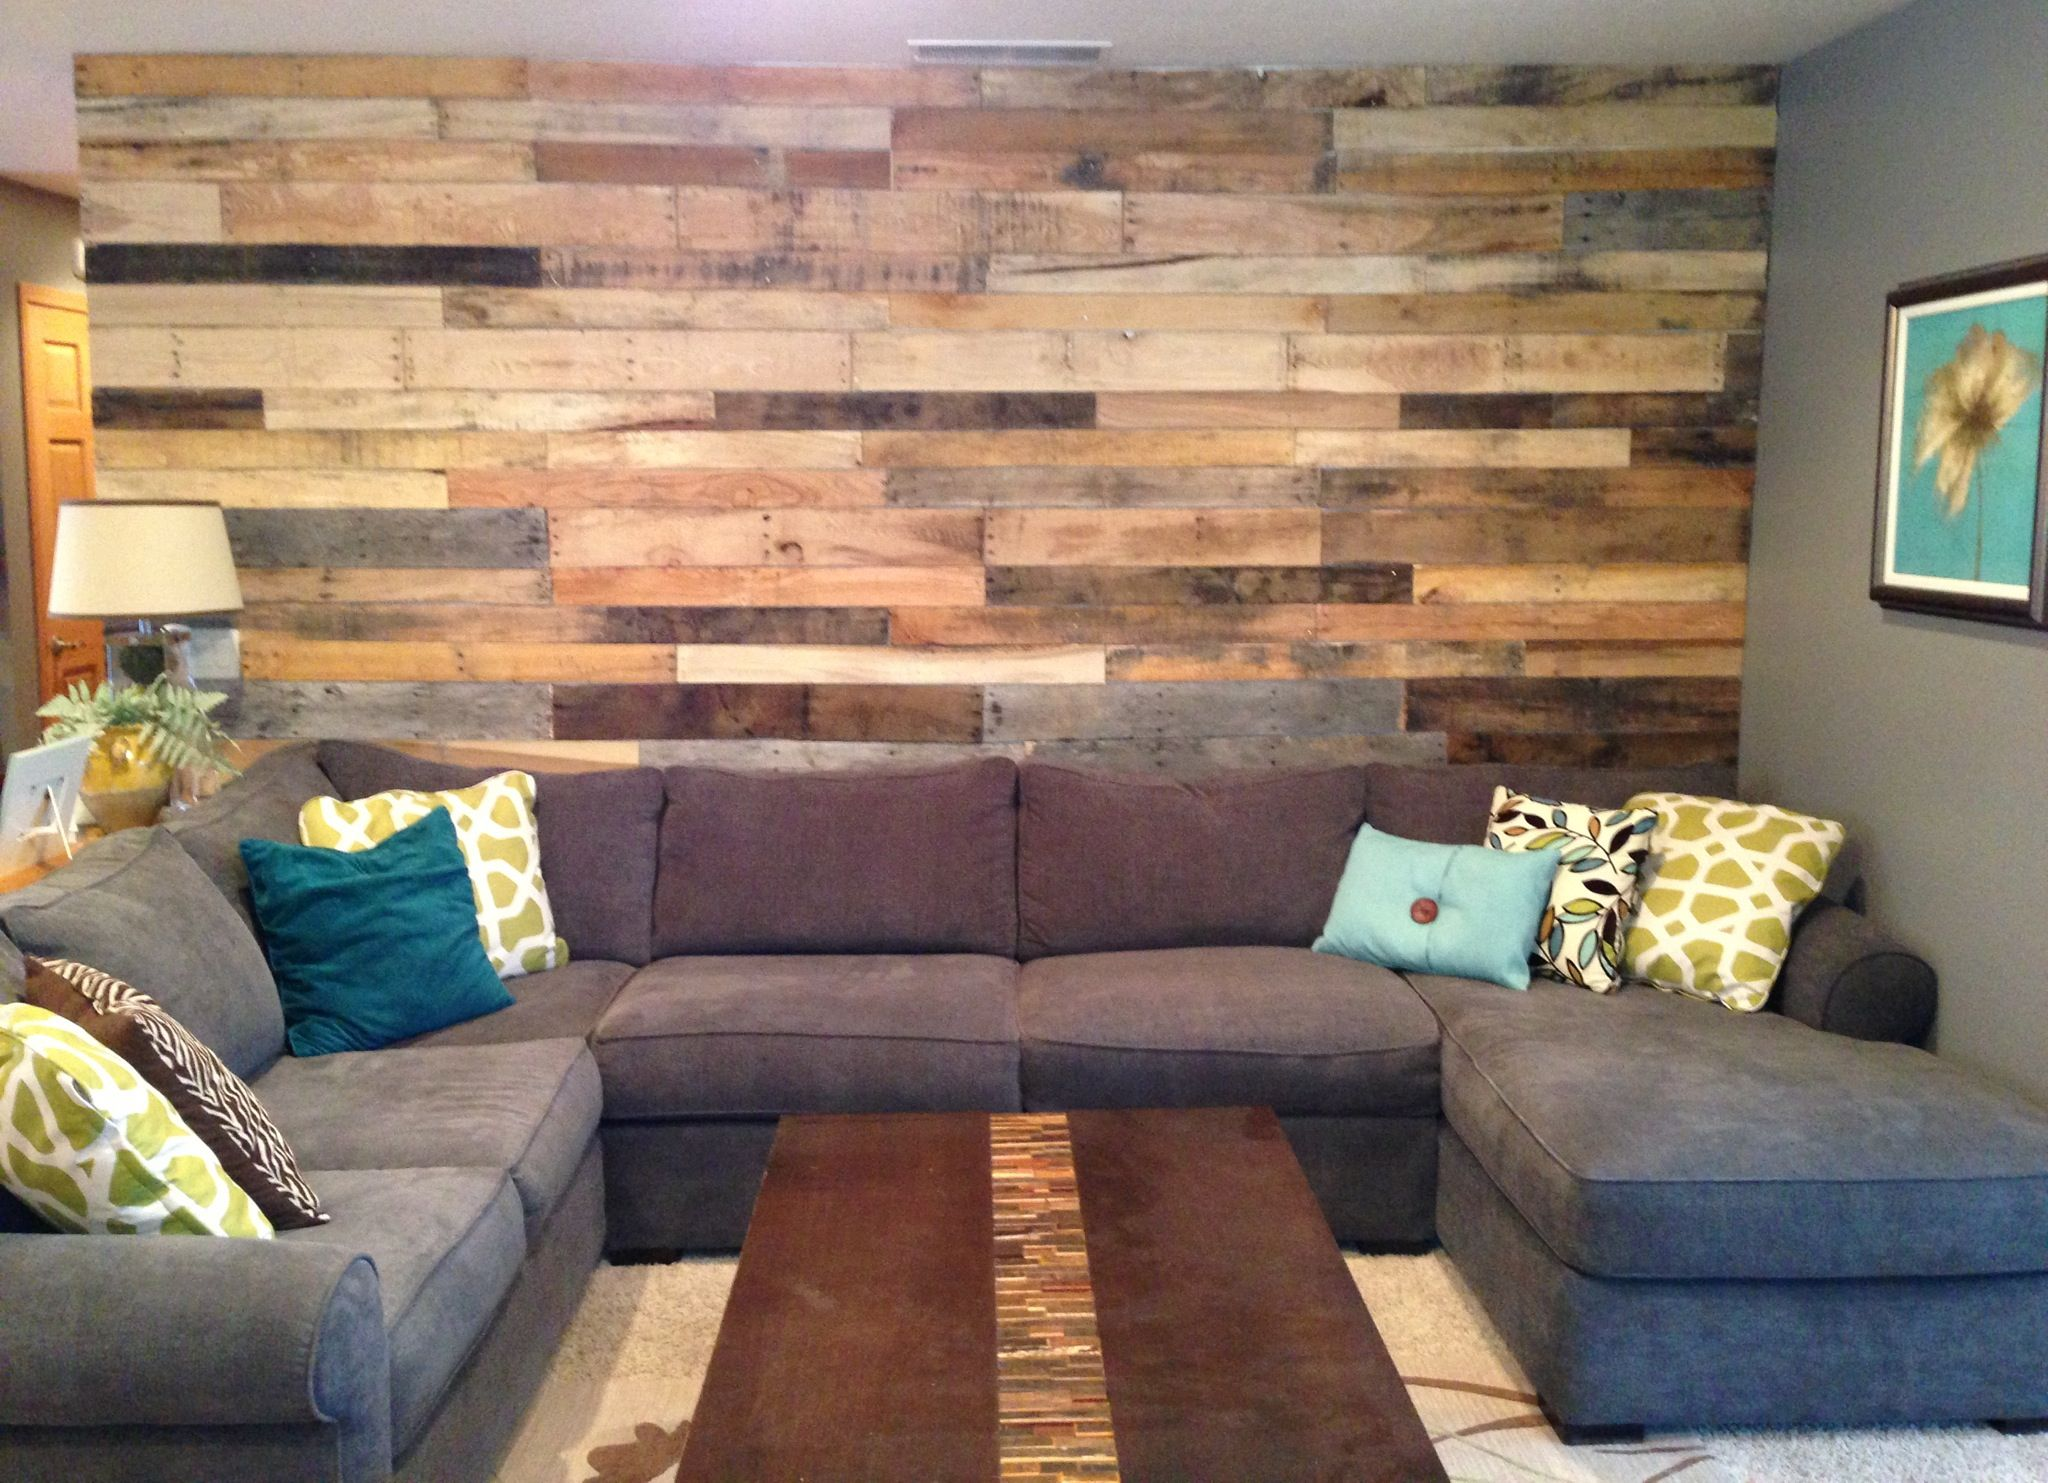 Our Living Room Pallet Wall Pallet Wall Decor Pallet Wall Pallet Wall Bedroom #pallet #furniture #living #room